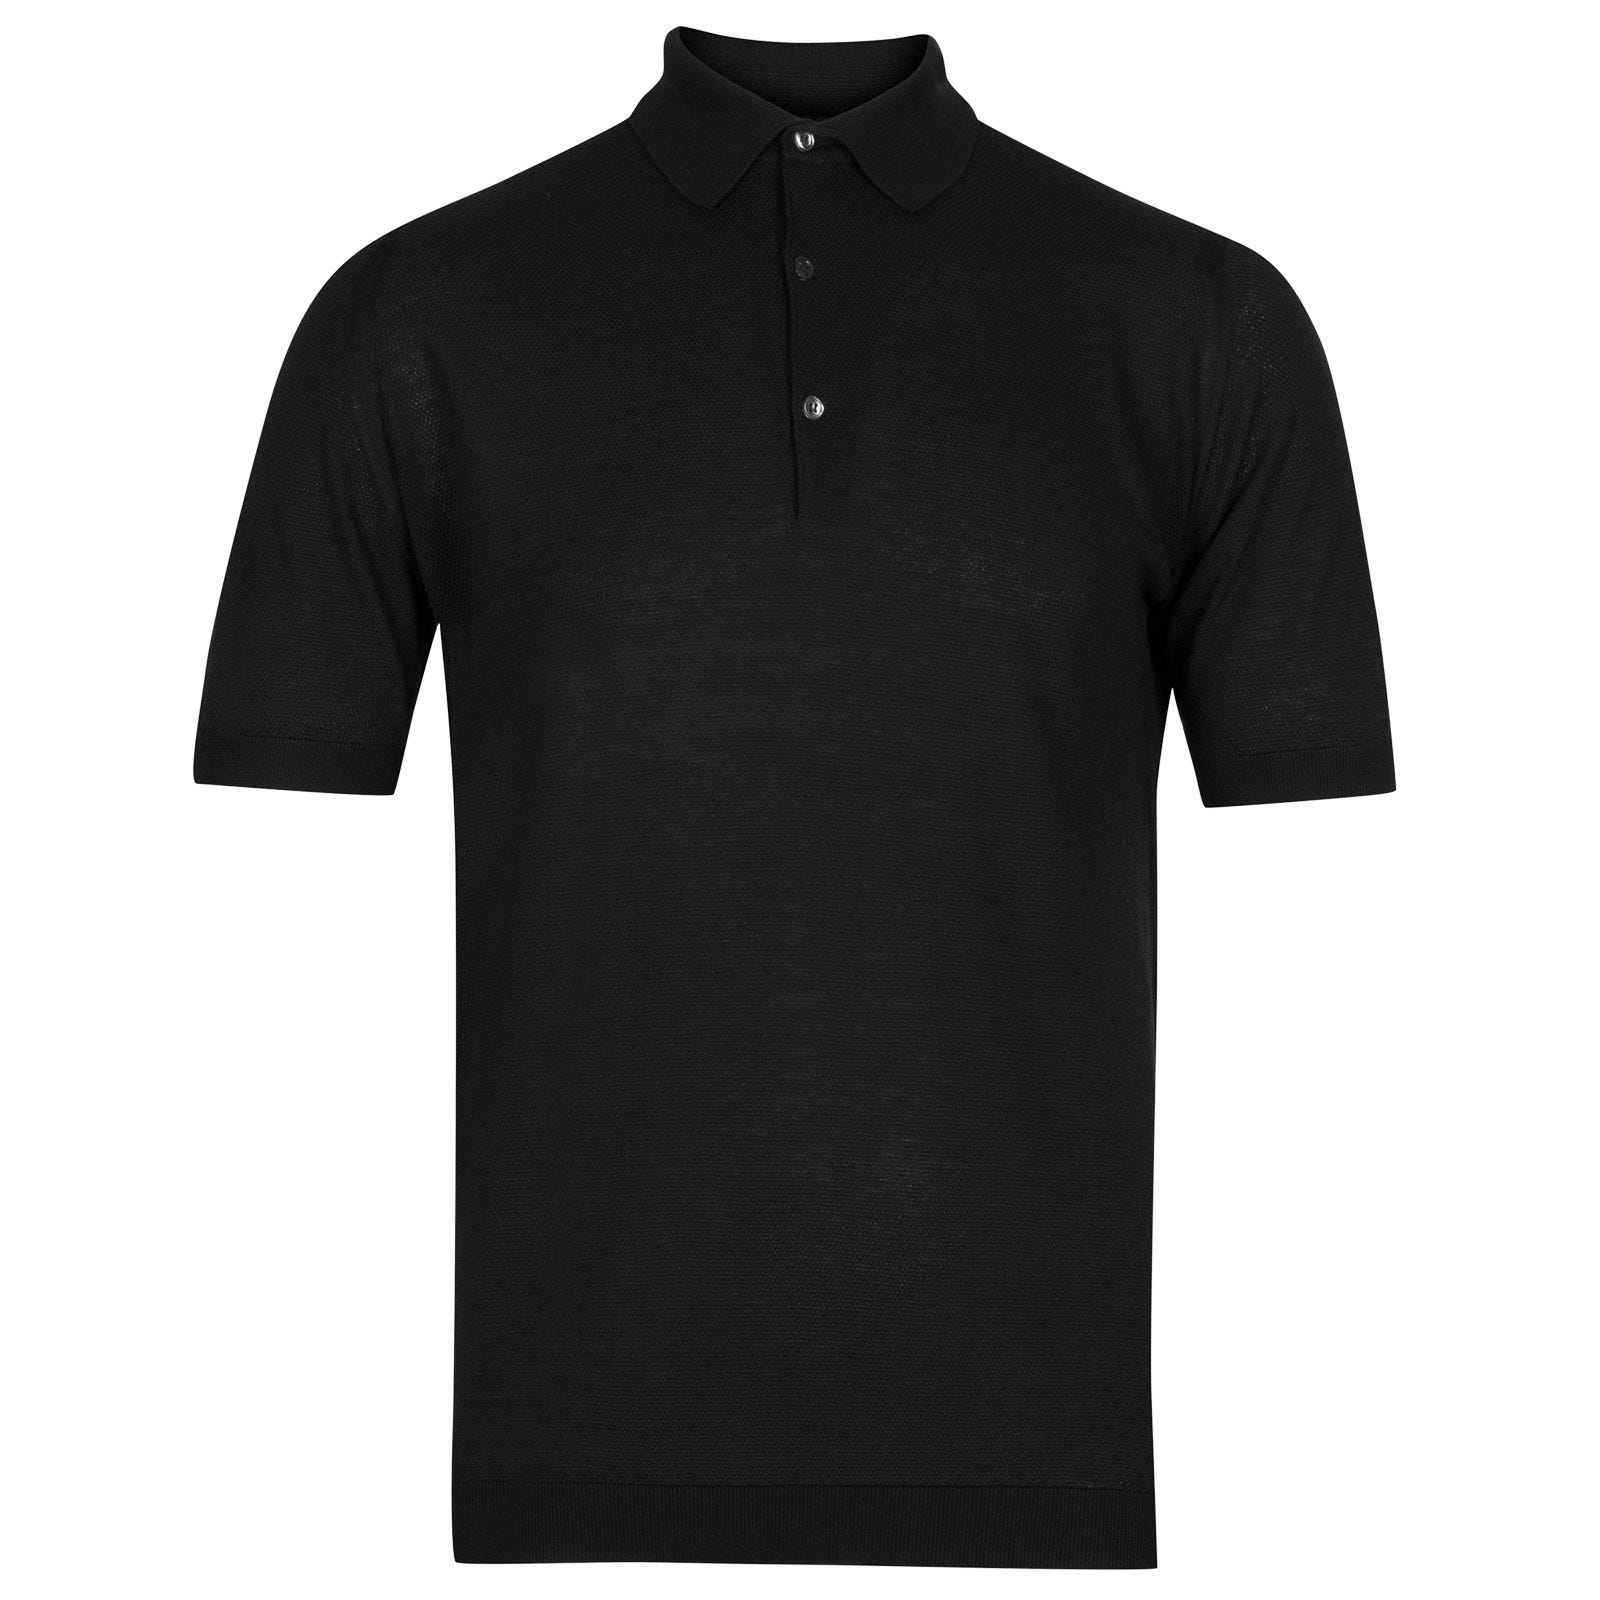 John Smedley roth Sea Island Cotton Shirt in Black-XL